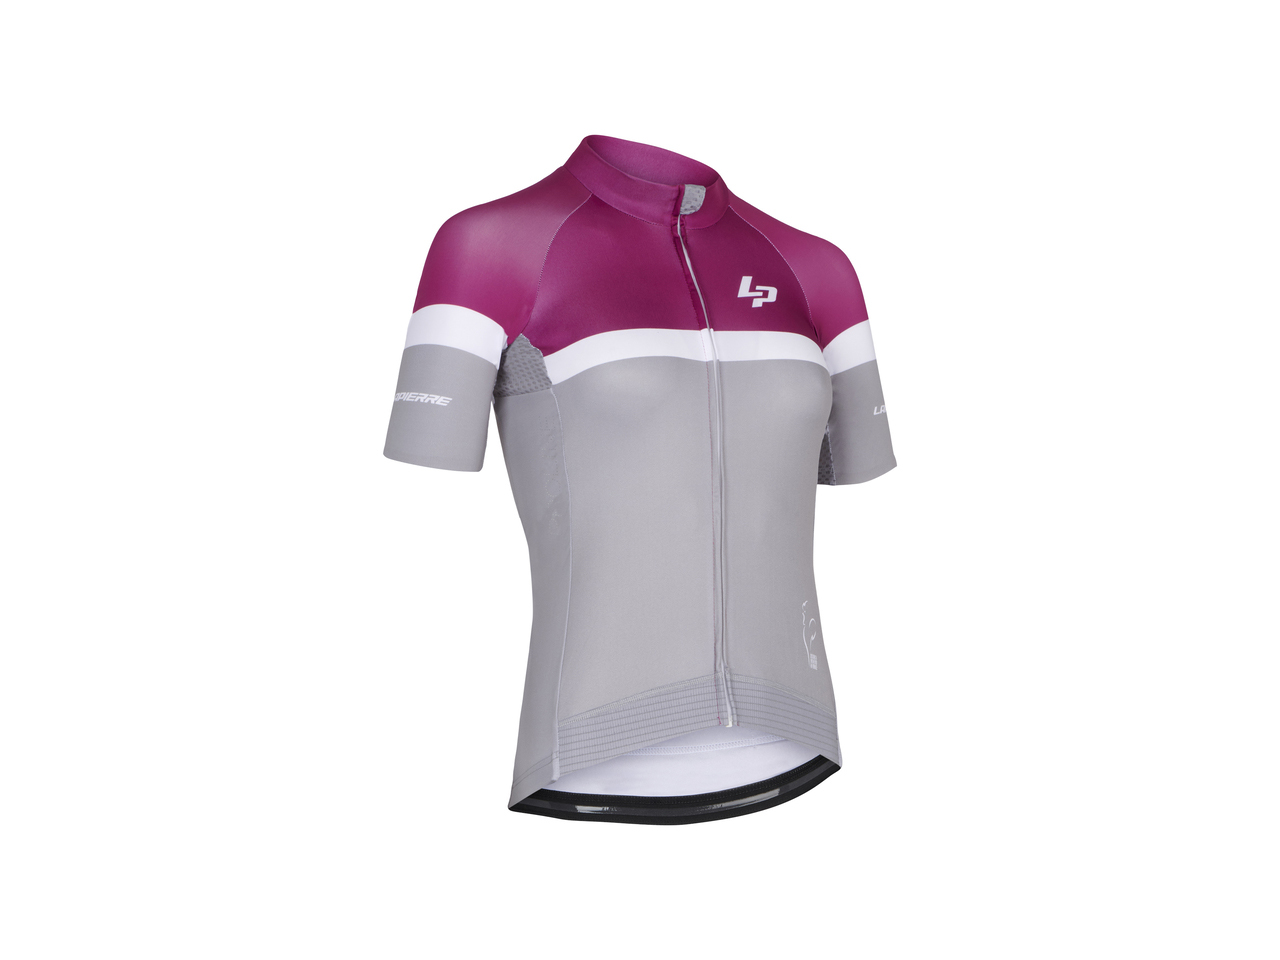 Lapierre Ultimate SL Madeleine Cycling Jersey for women - Front